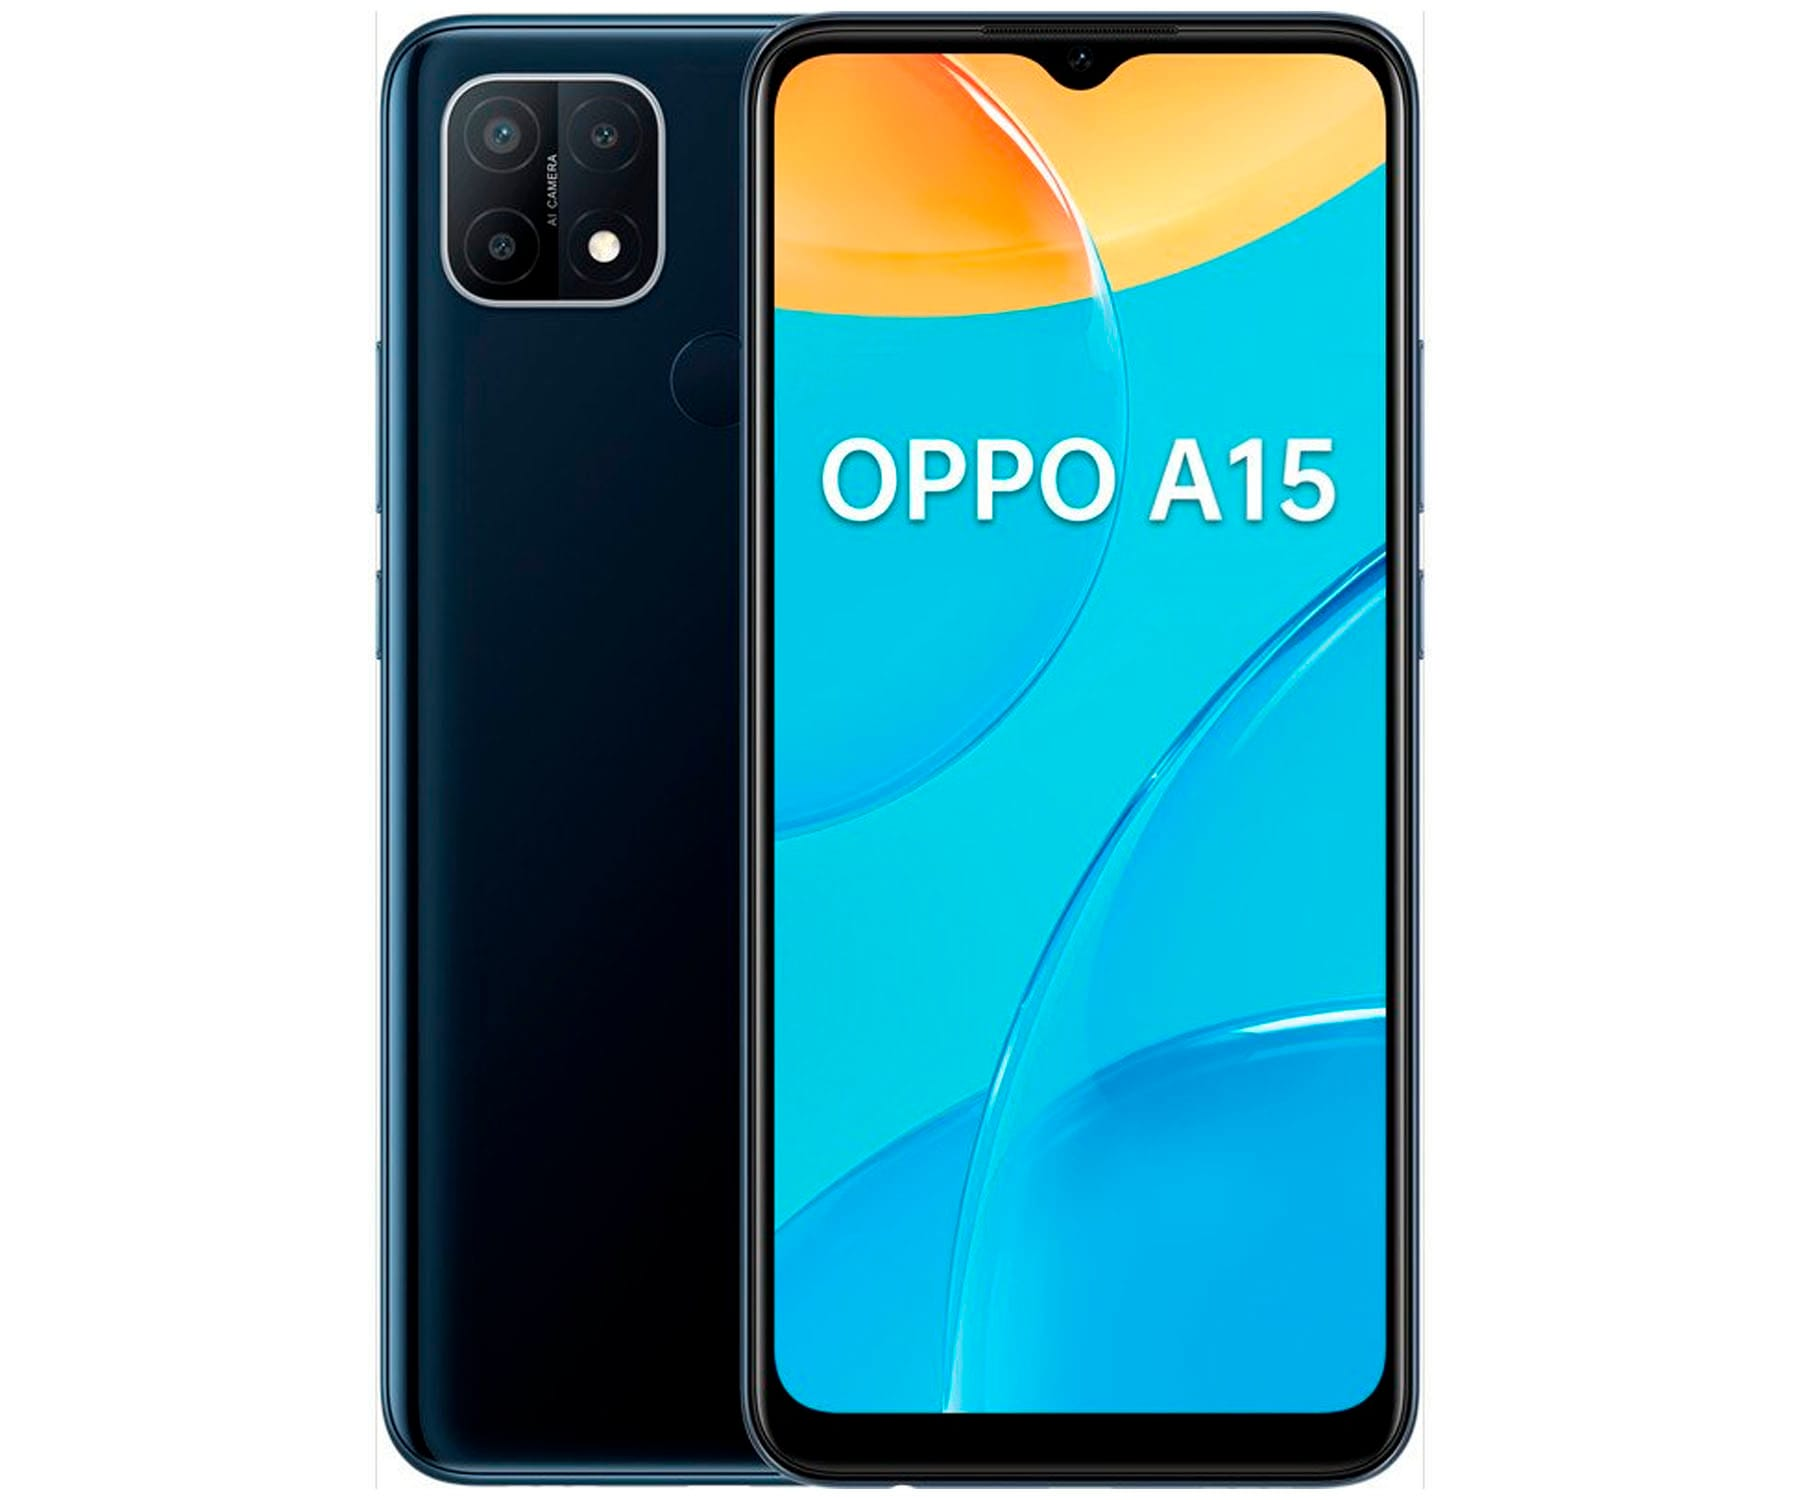 OPPO A15 NEGRO DINÁMICO MÓVIL 4G 6.52'' HD+ OCTACORE 32GB 3GB RAM TRICAM 13MP SELFIES 5MP